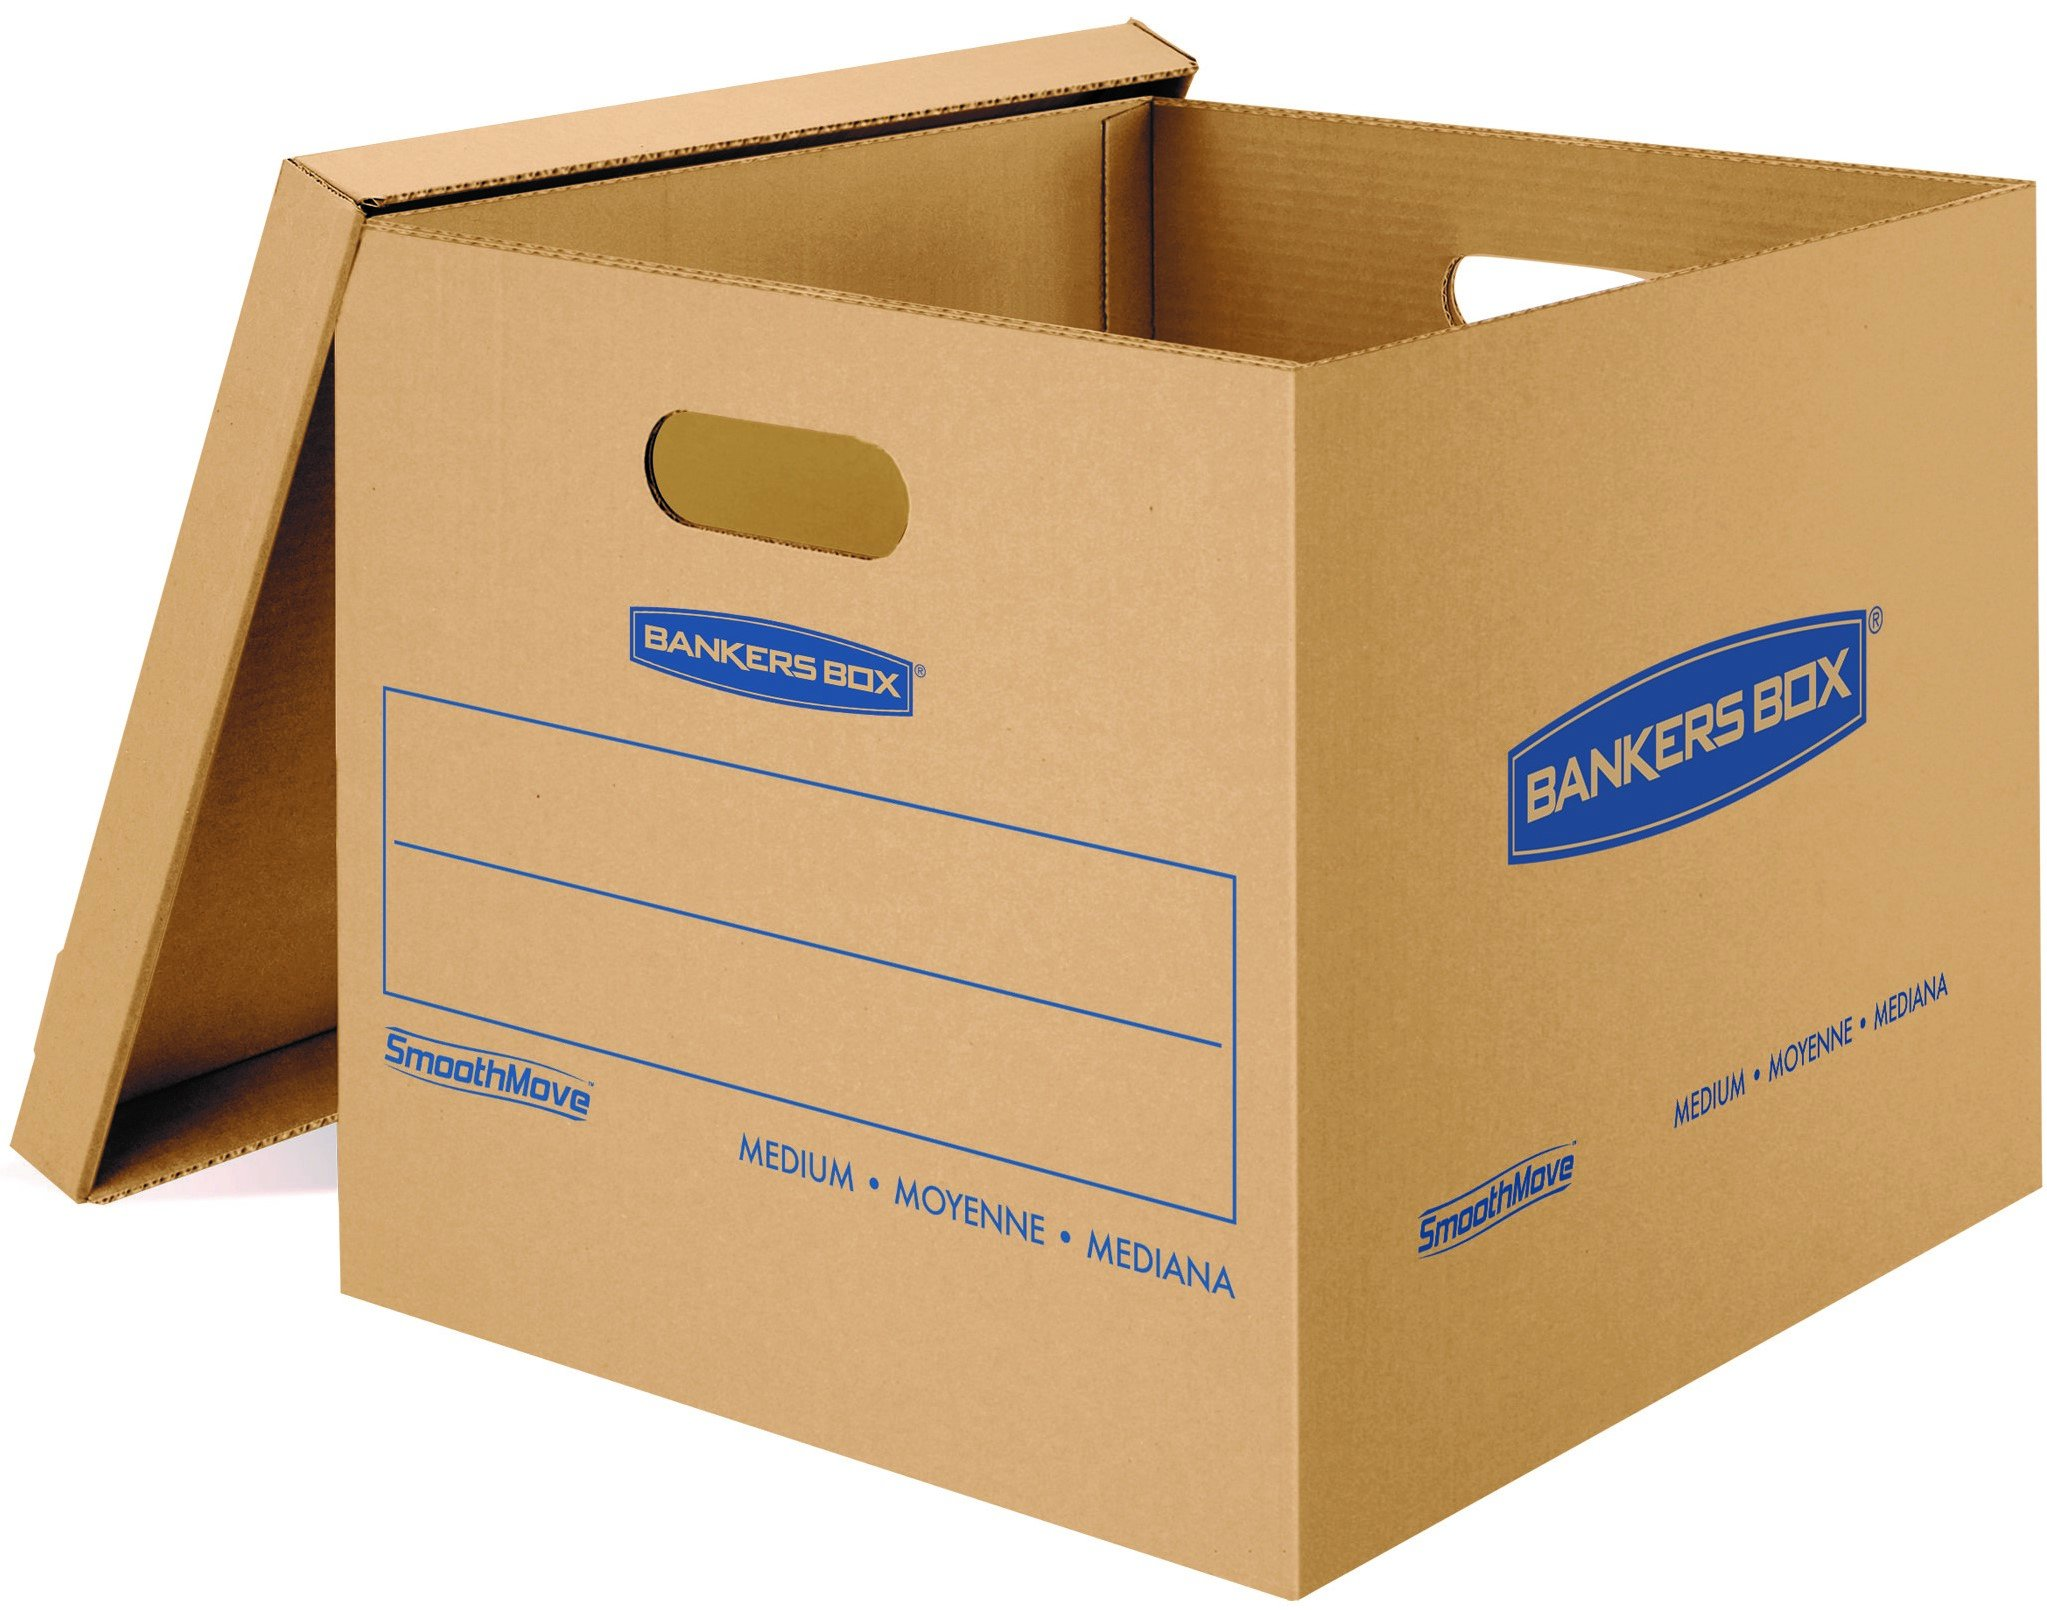 Bankers Box SmoothMove Classic Moving Boxes, Tape-Free Assembly, Easy Carry Handles, Medium, 18 x 15 x 14 Inches, 10 Pack (7717204) by Bankers Box